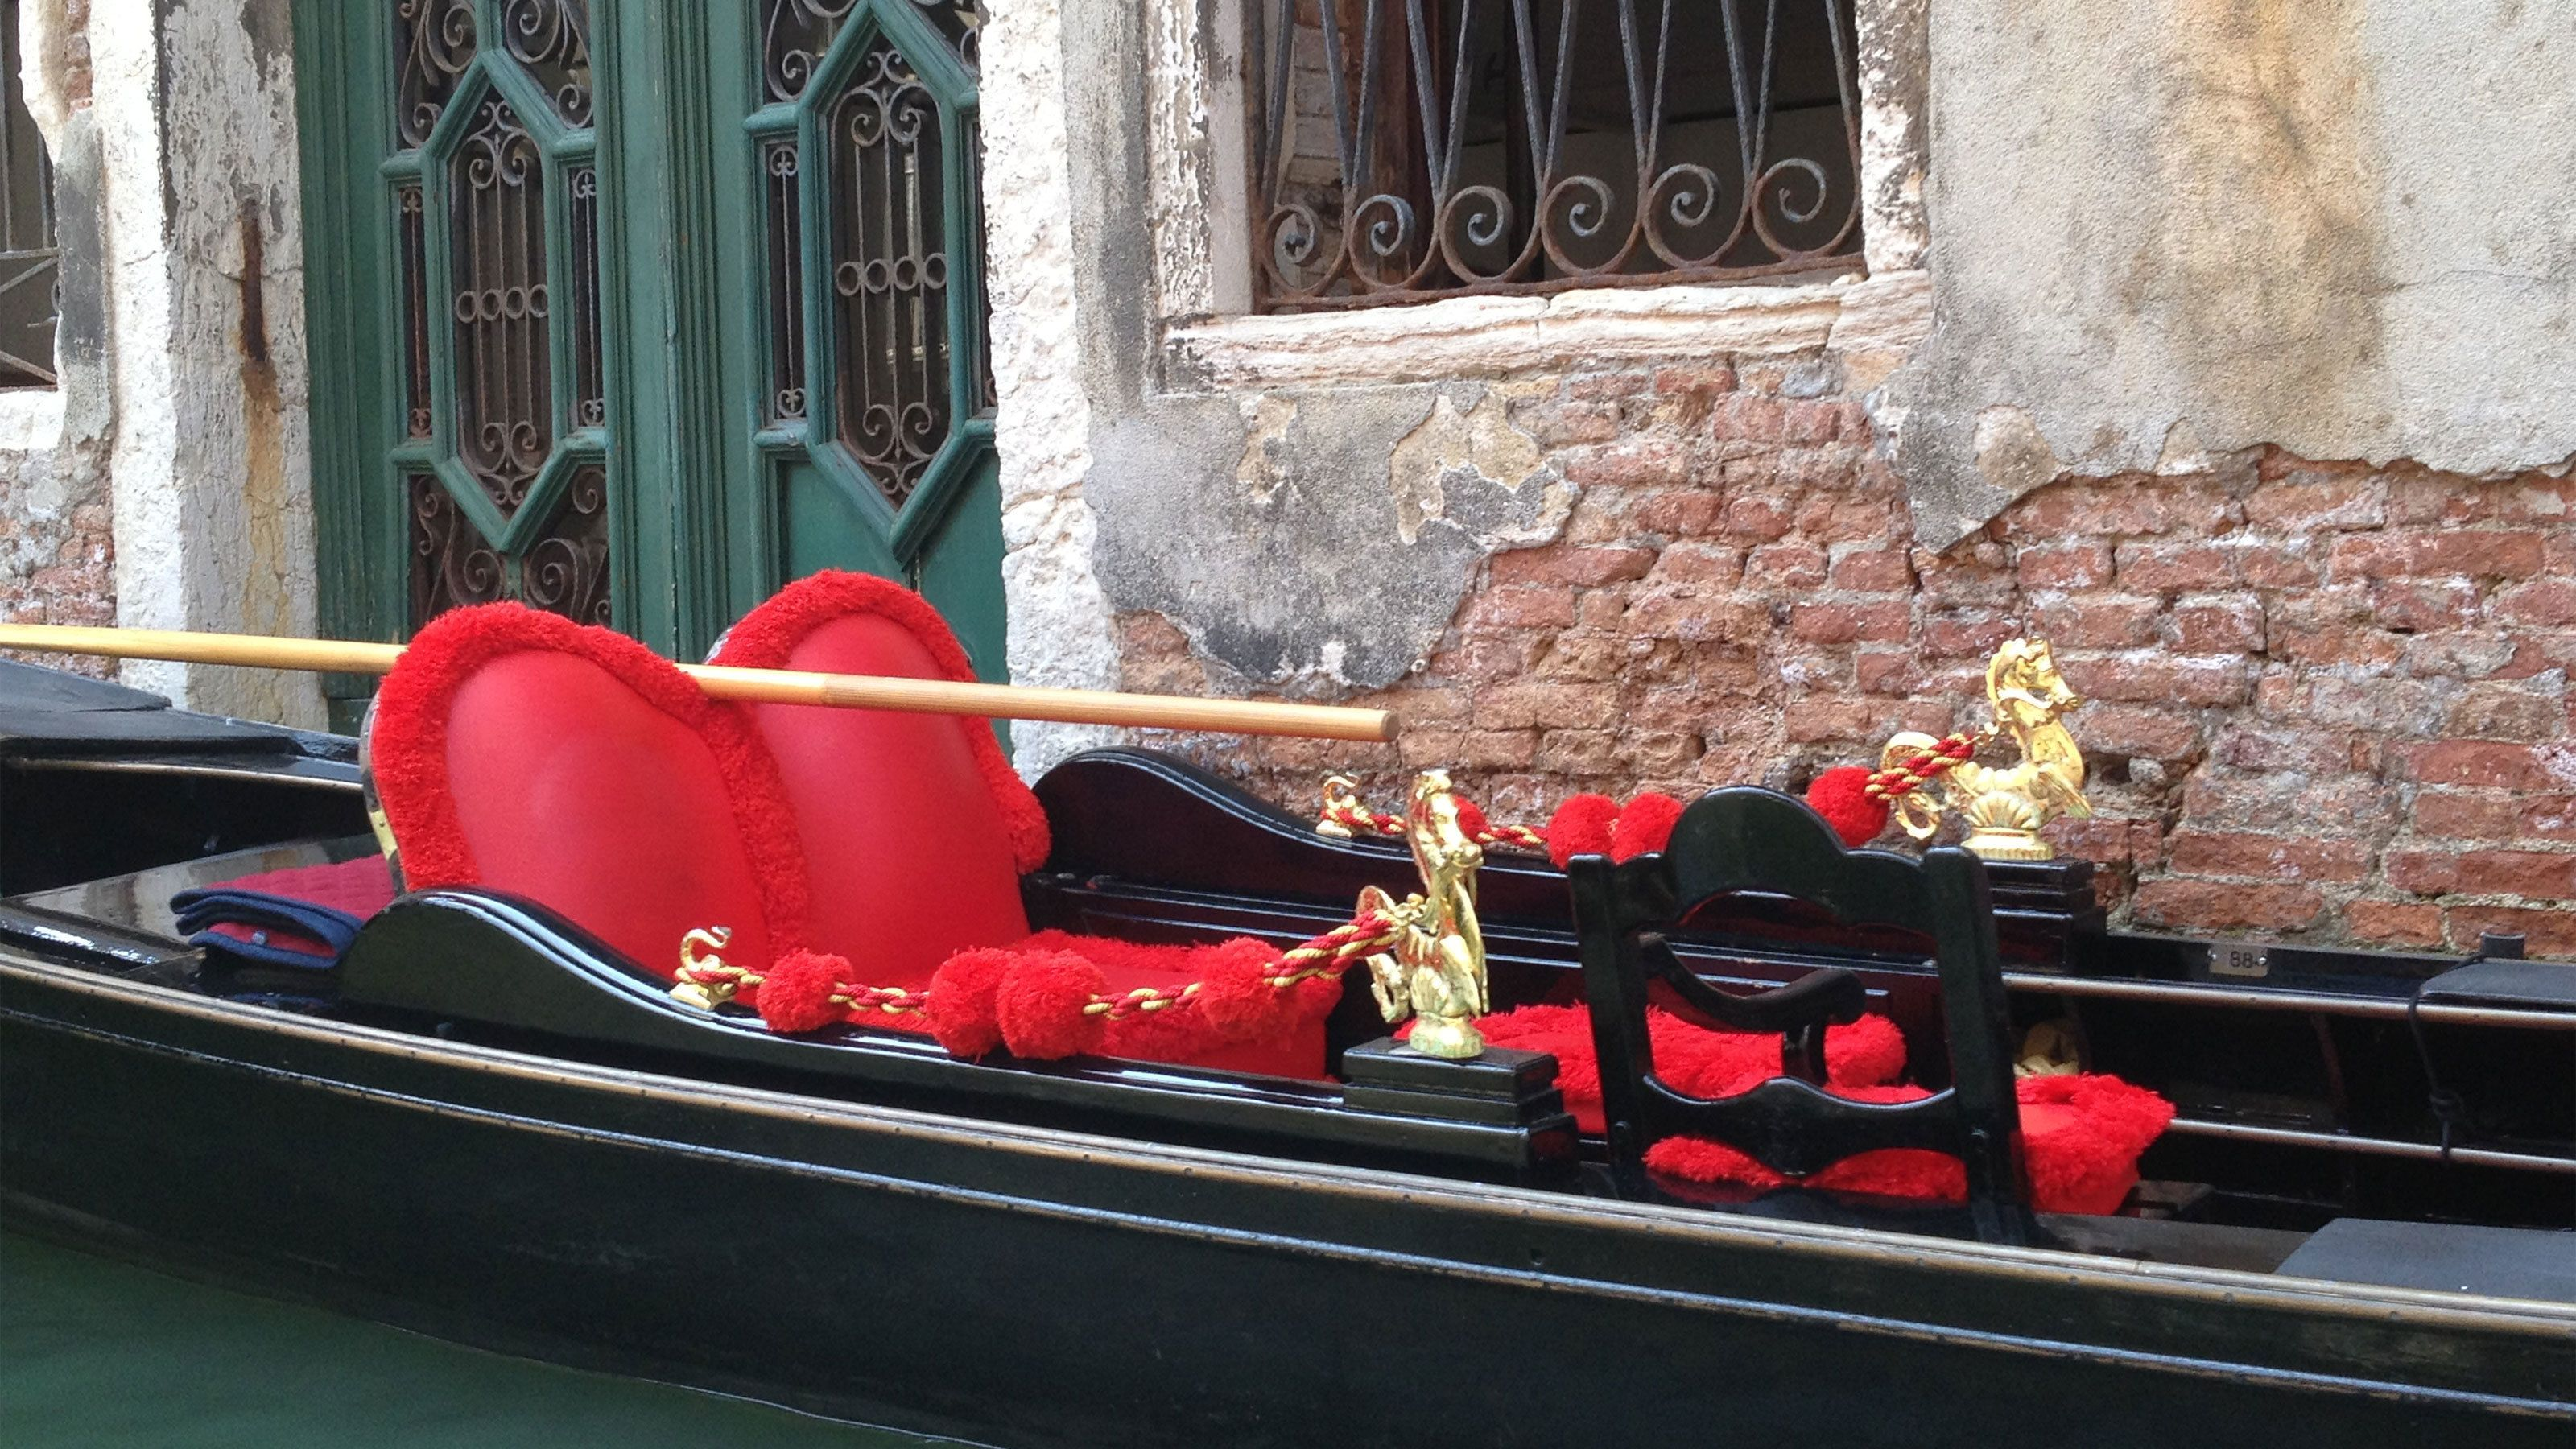 Gondola with heart pillow in Venice Italy